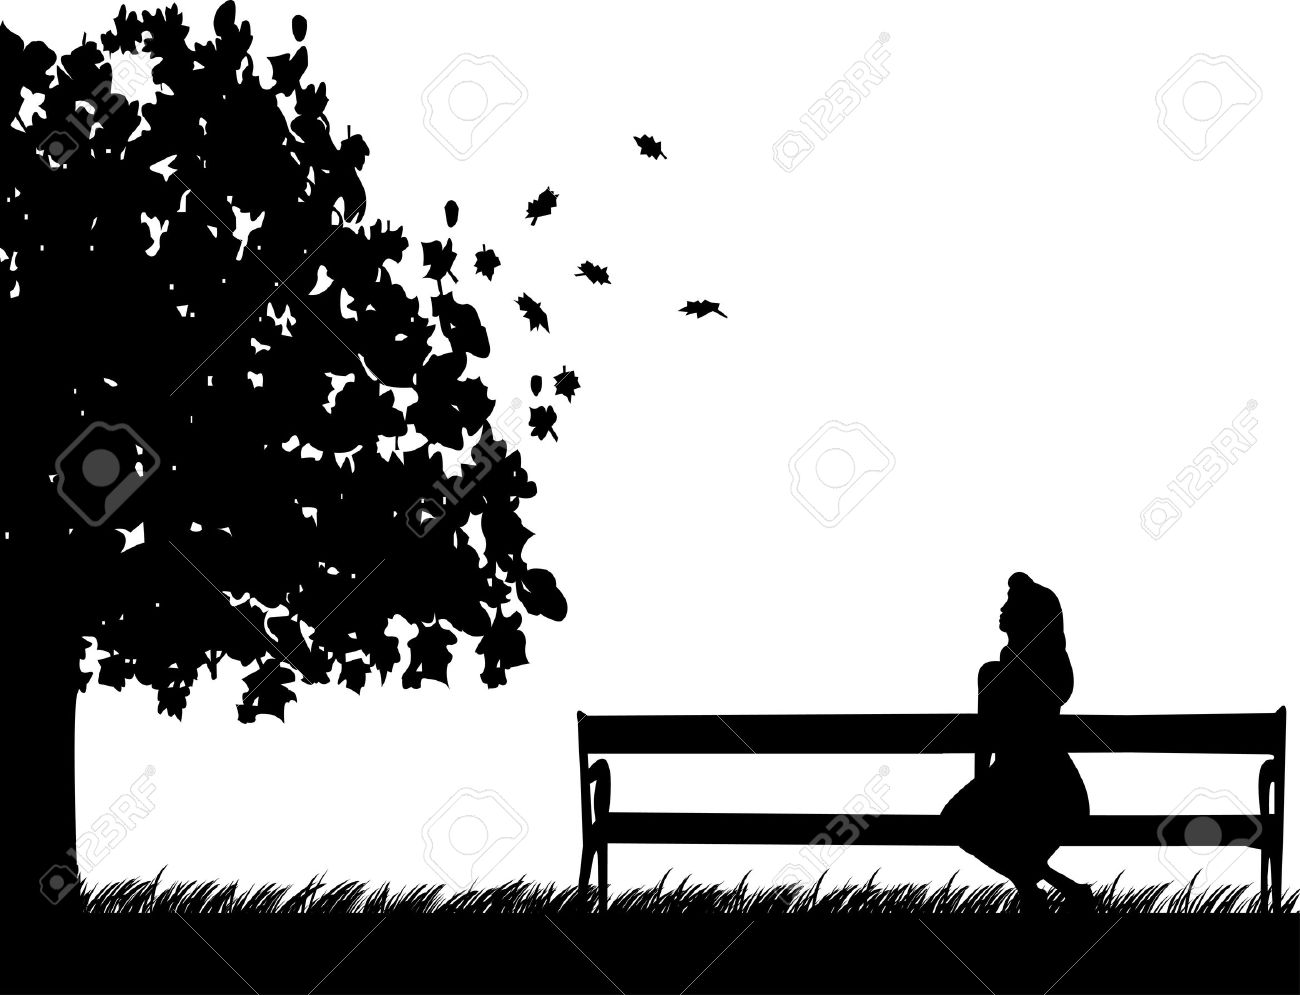 Bench clipart silhouette.  best waiting benches